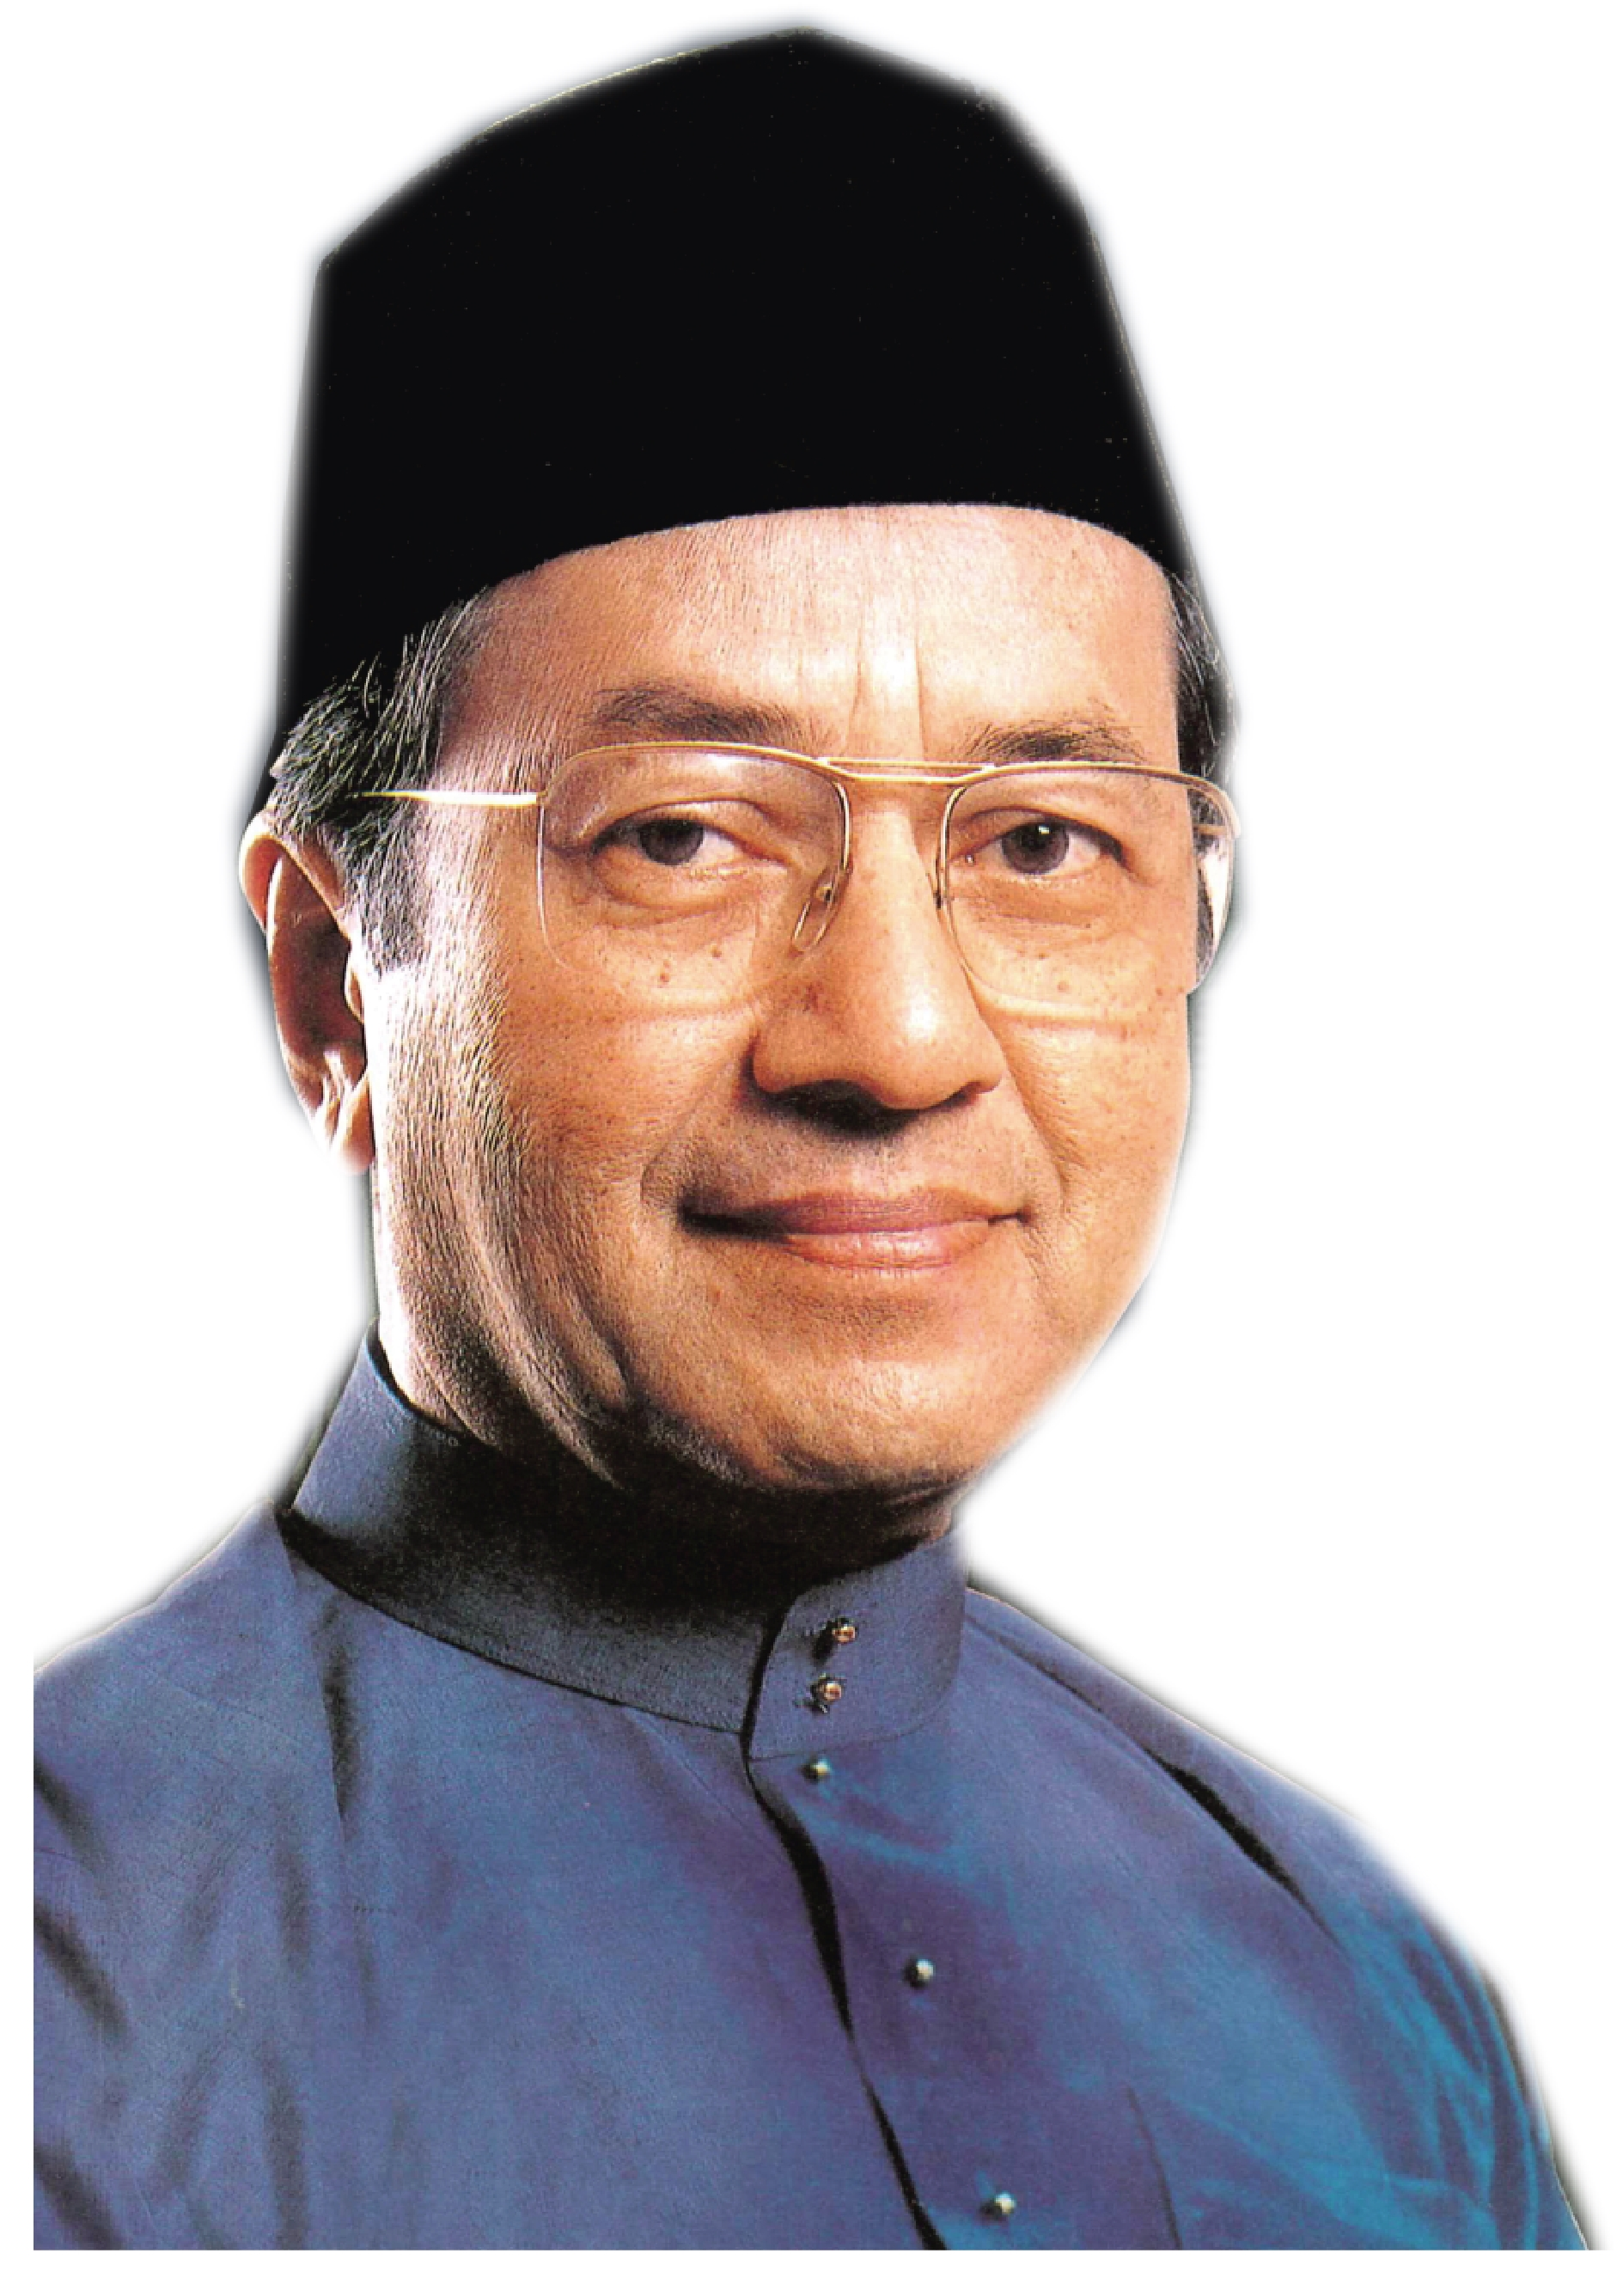 essay about tun dr mahathir Read this essay on speech by: dato' seri dr mahathir bin mohamad come browse our large digital warehouse of free sample essays.